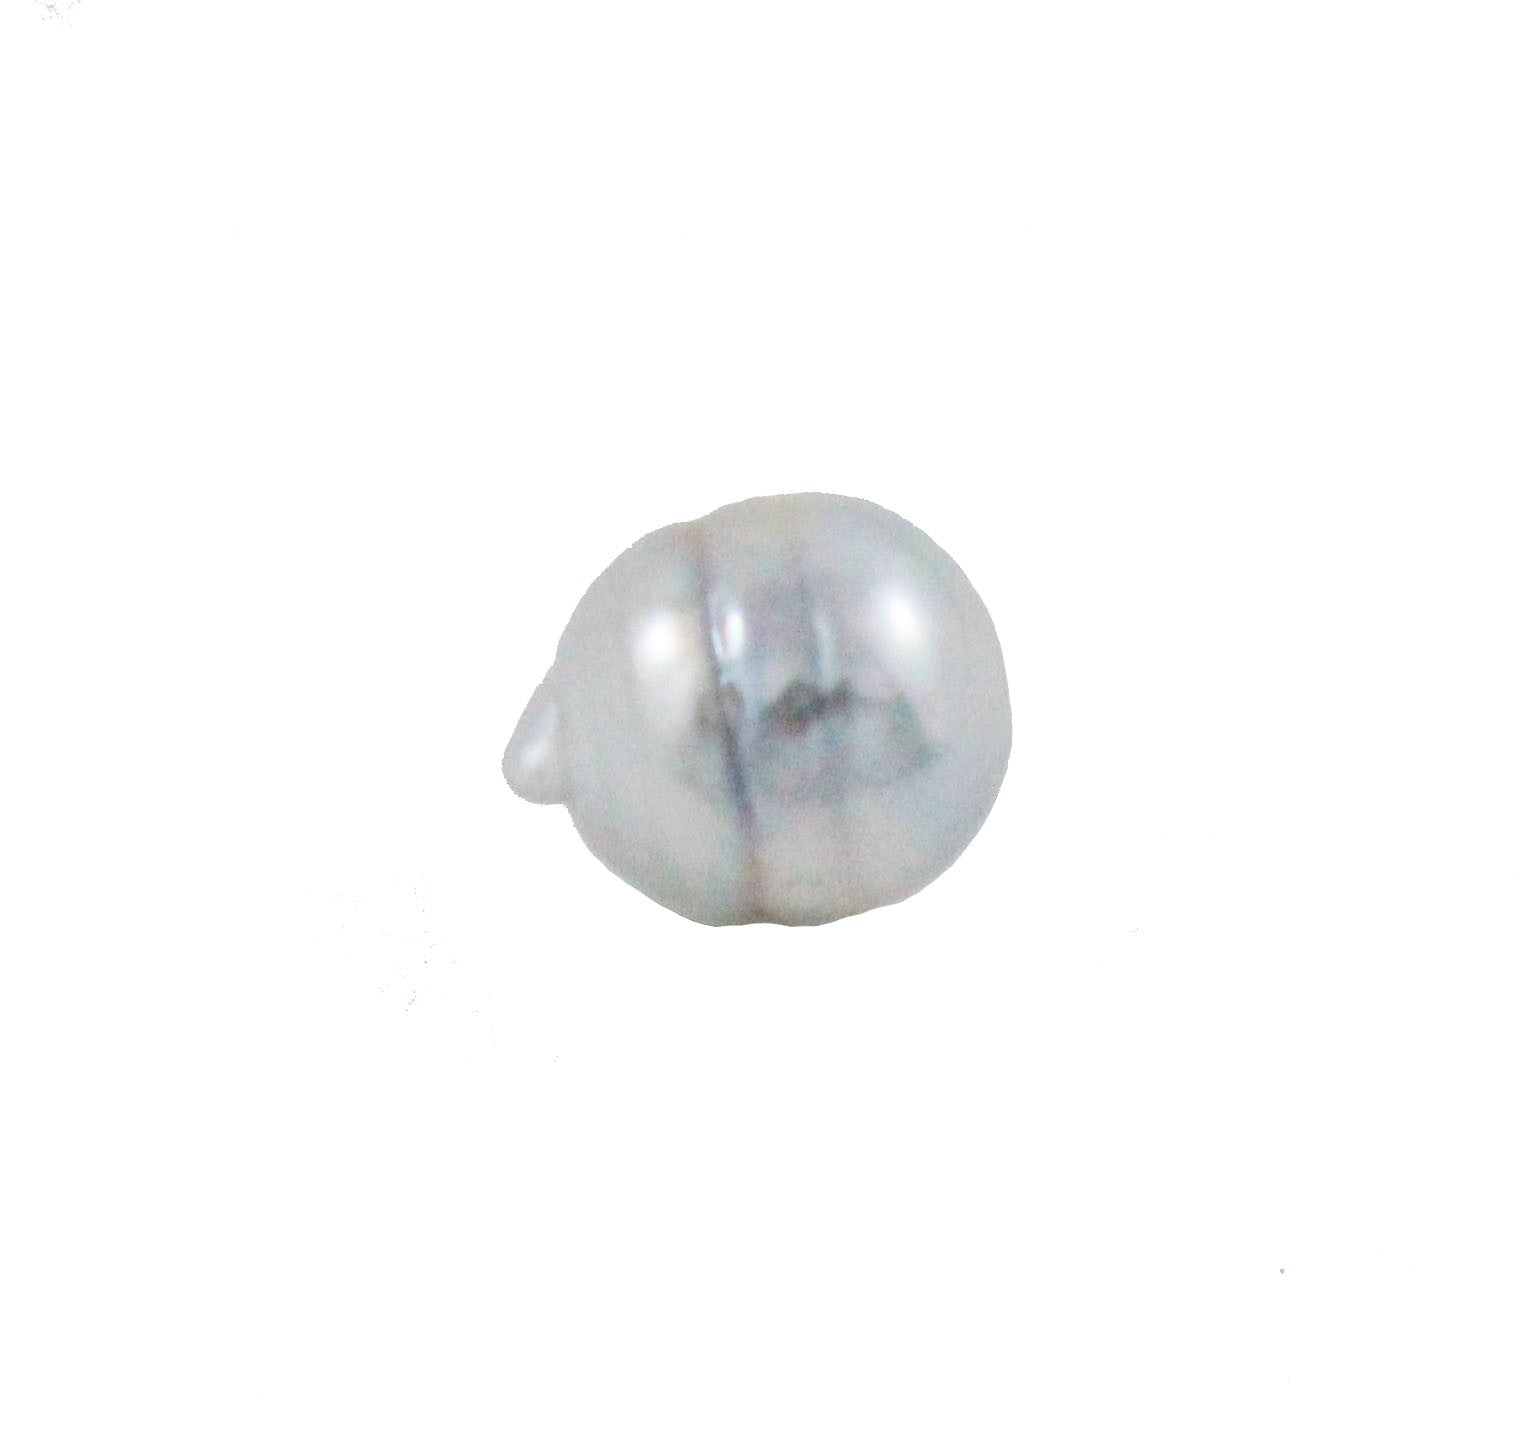 Tahitian pearl undrilled 0.90gr mm 9.97x8.19mm - Purchase only with custom order - Sarah Hughes - 2